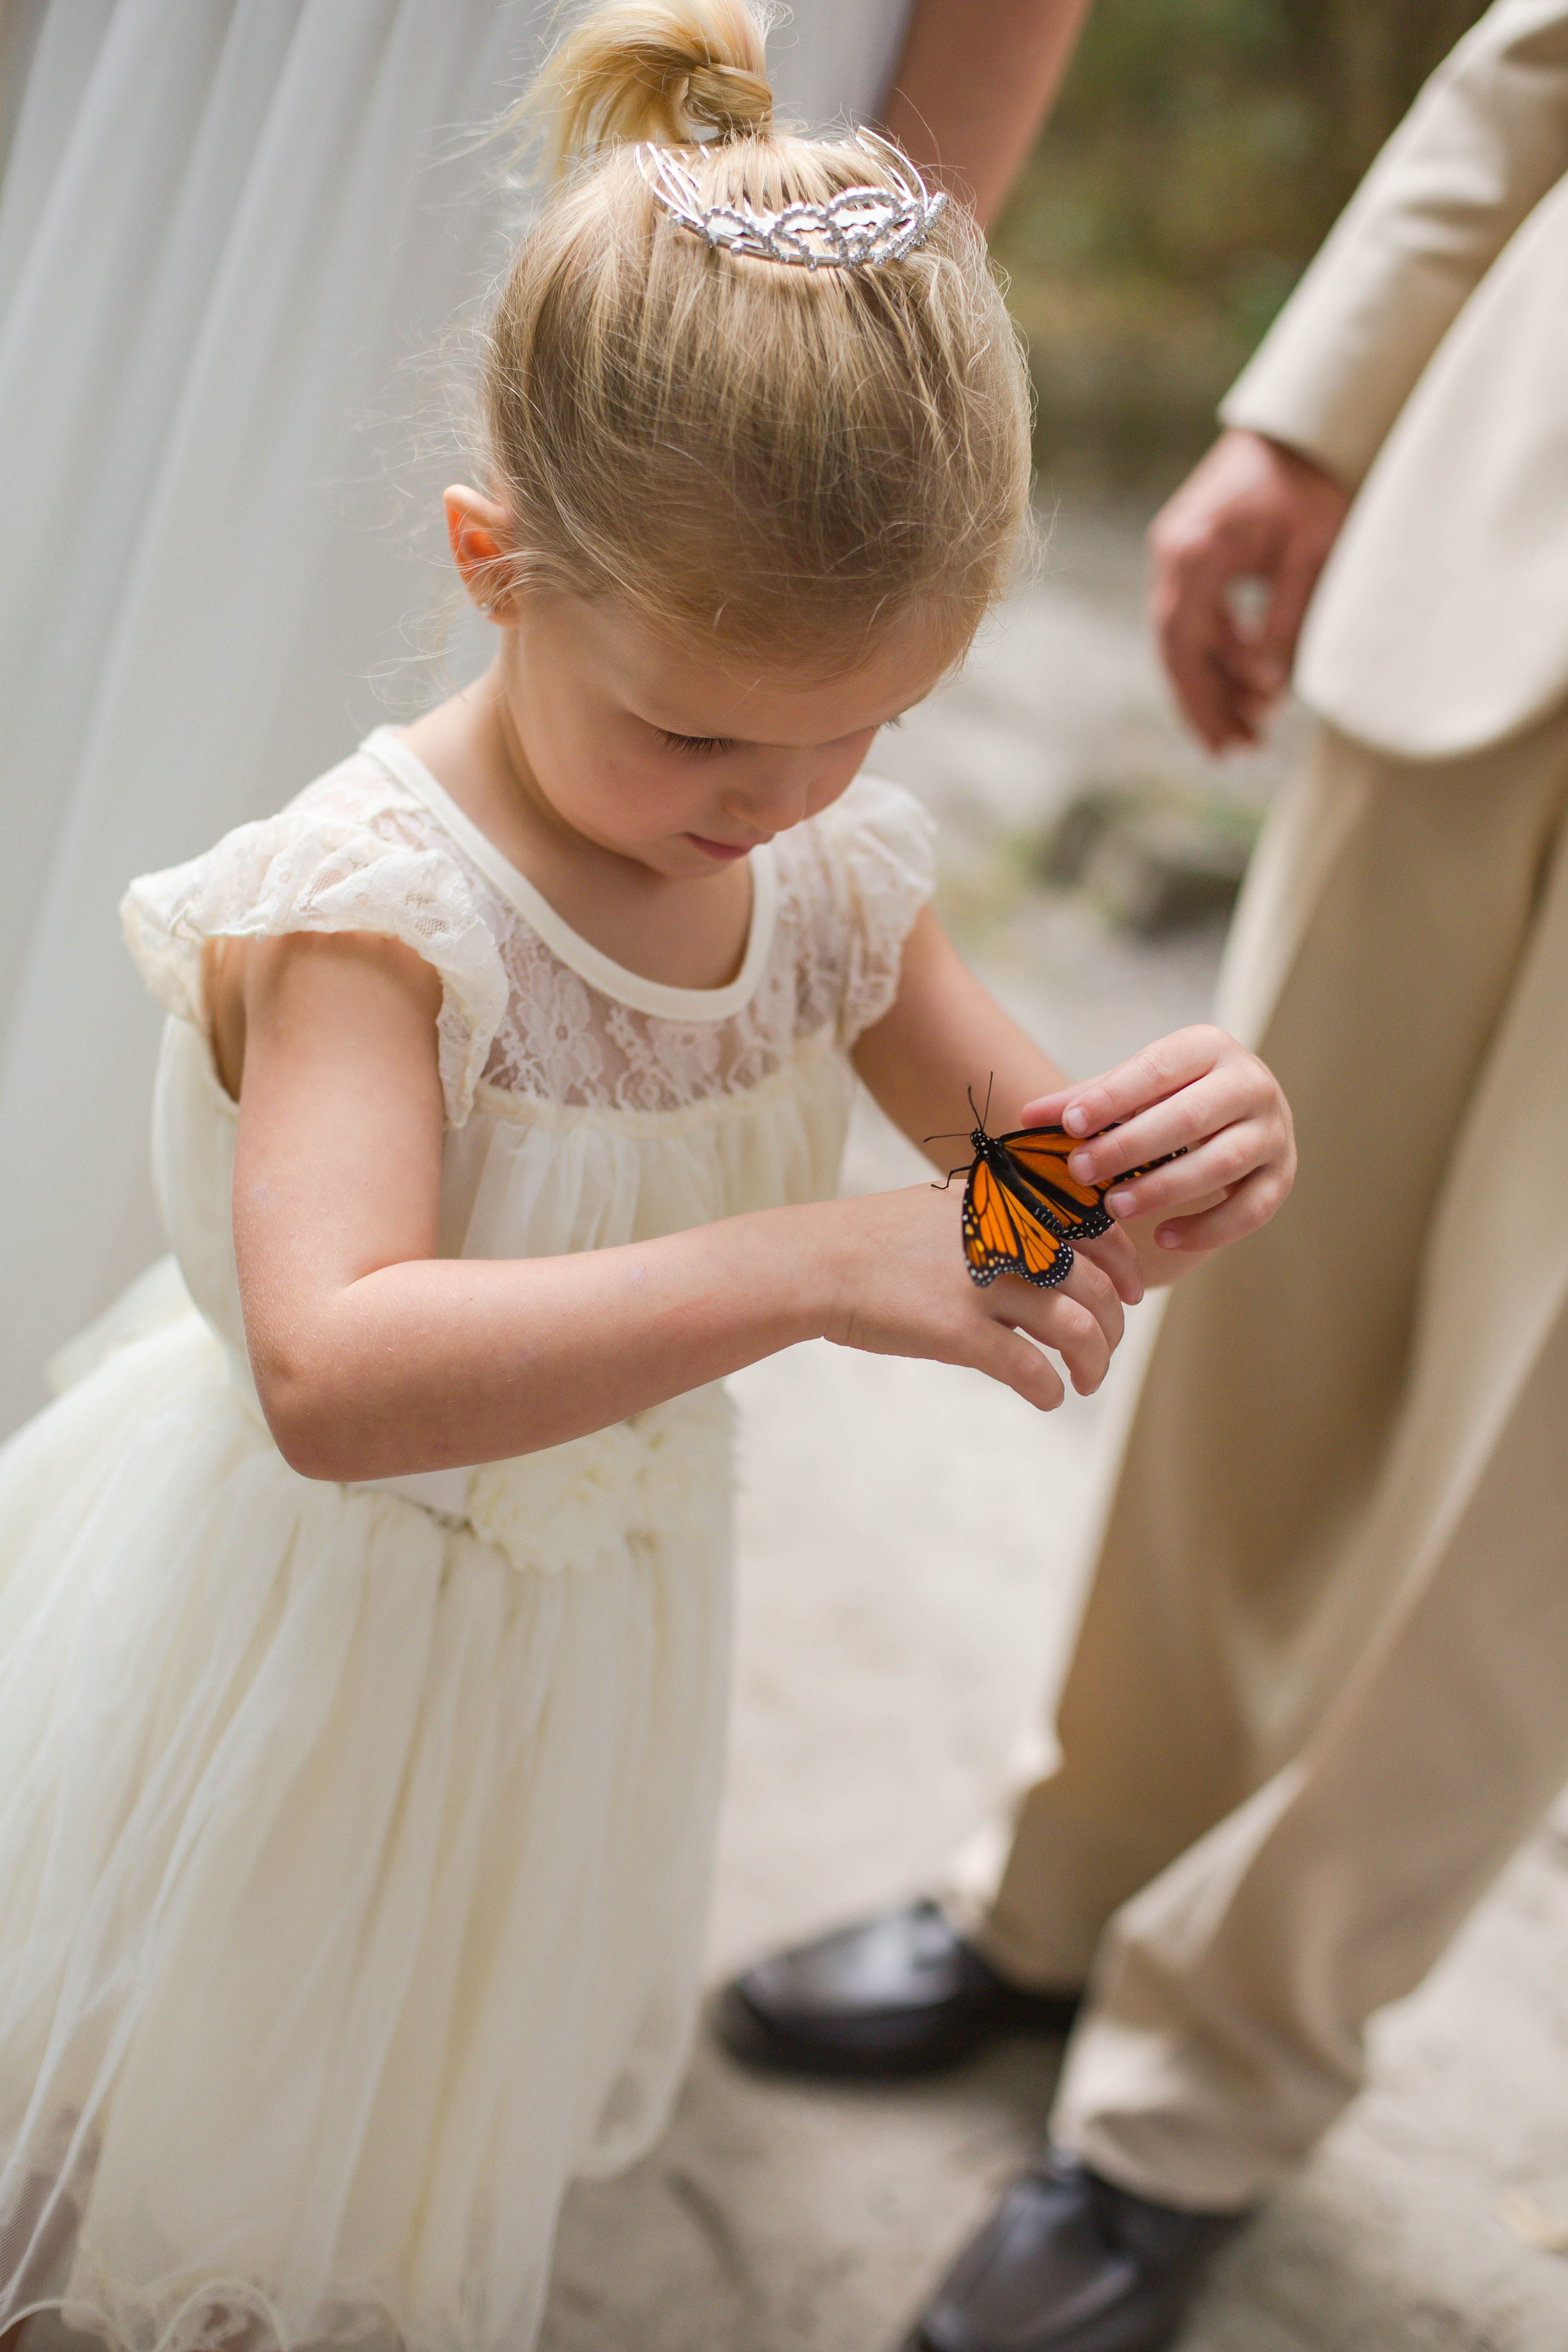 Butterfly release in honor of lost loved ones! Woodland